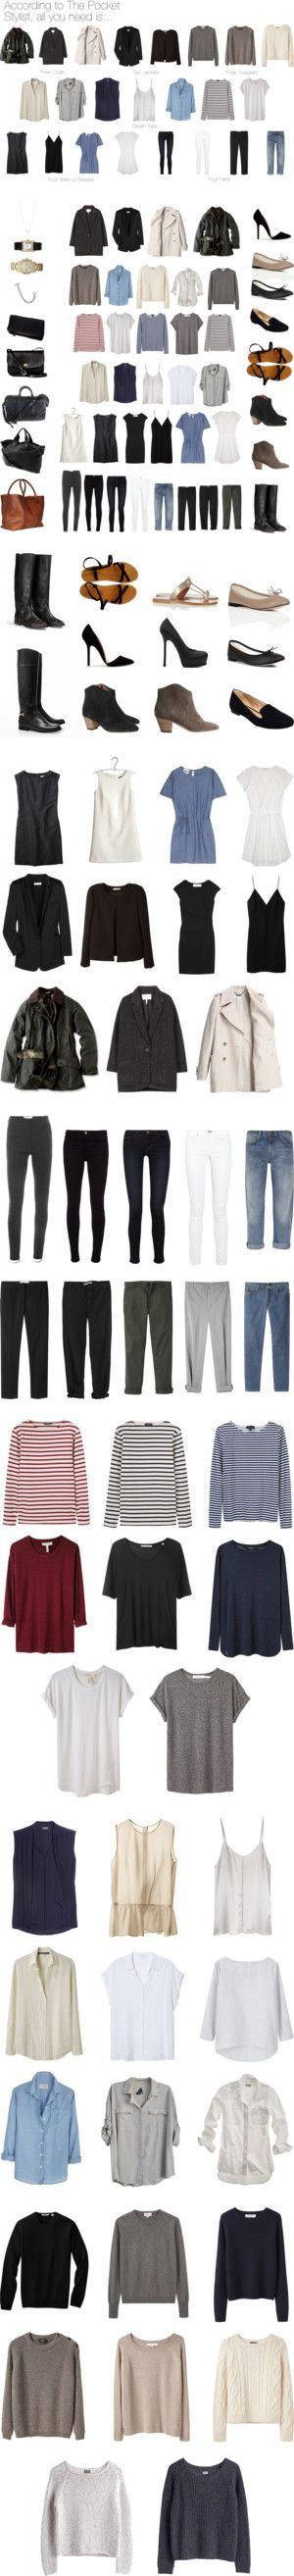 """""""Capsule Wardrobes"""" by keelyhenesey ❤ liked on Polyvore"""